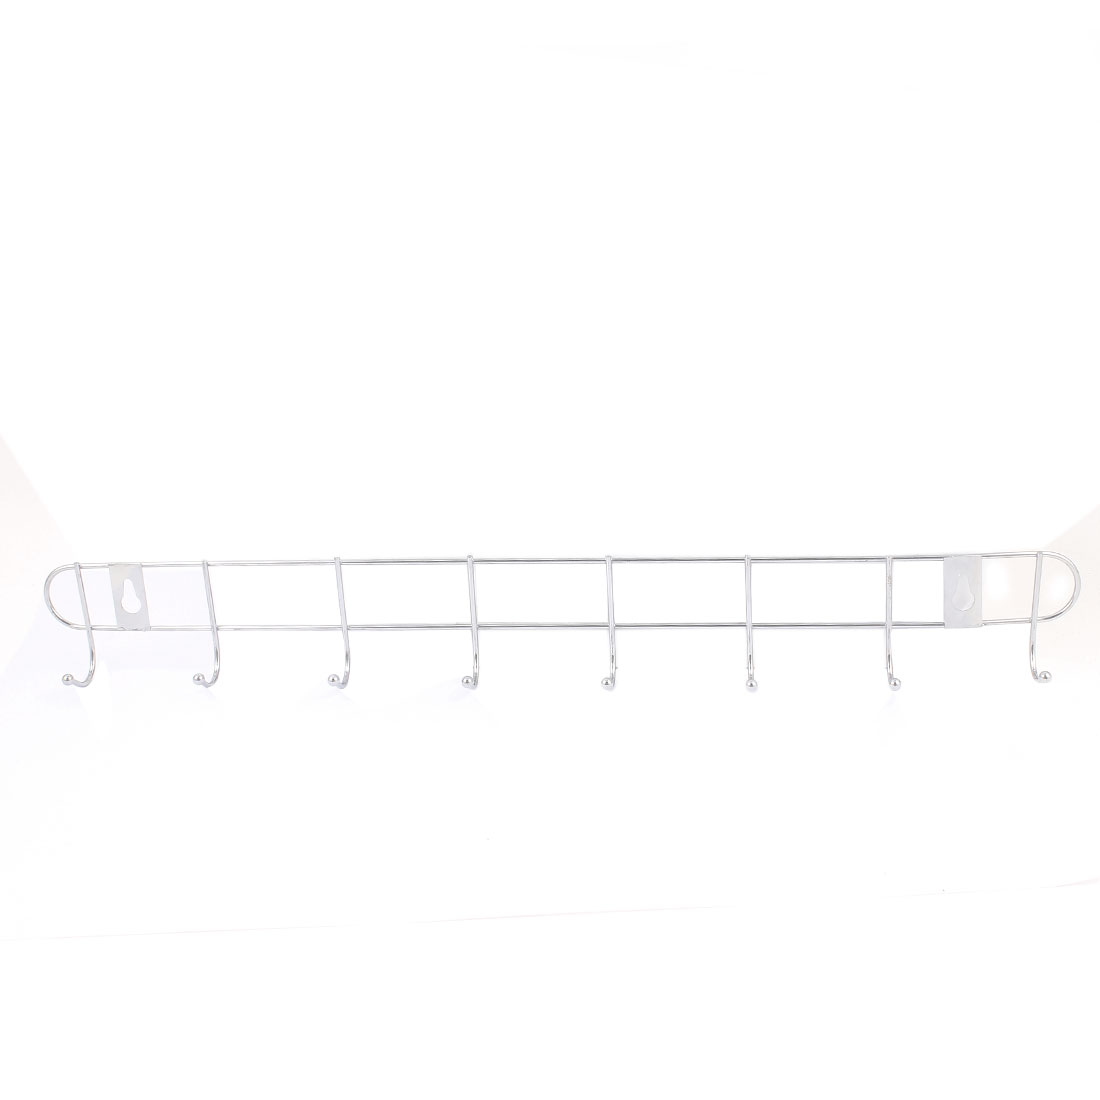 Home Bedroom Bathroom Hat Coat Towel Wall Mounted Metal 8-Hooks Hanger Rack Holder